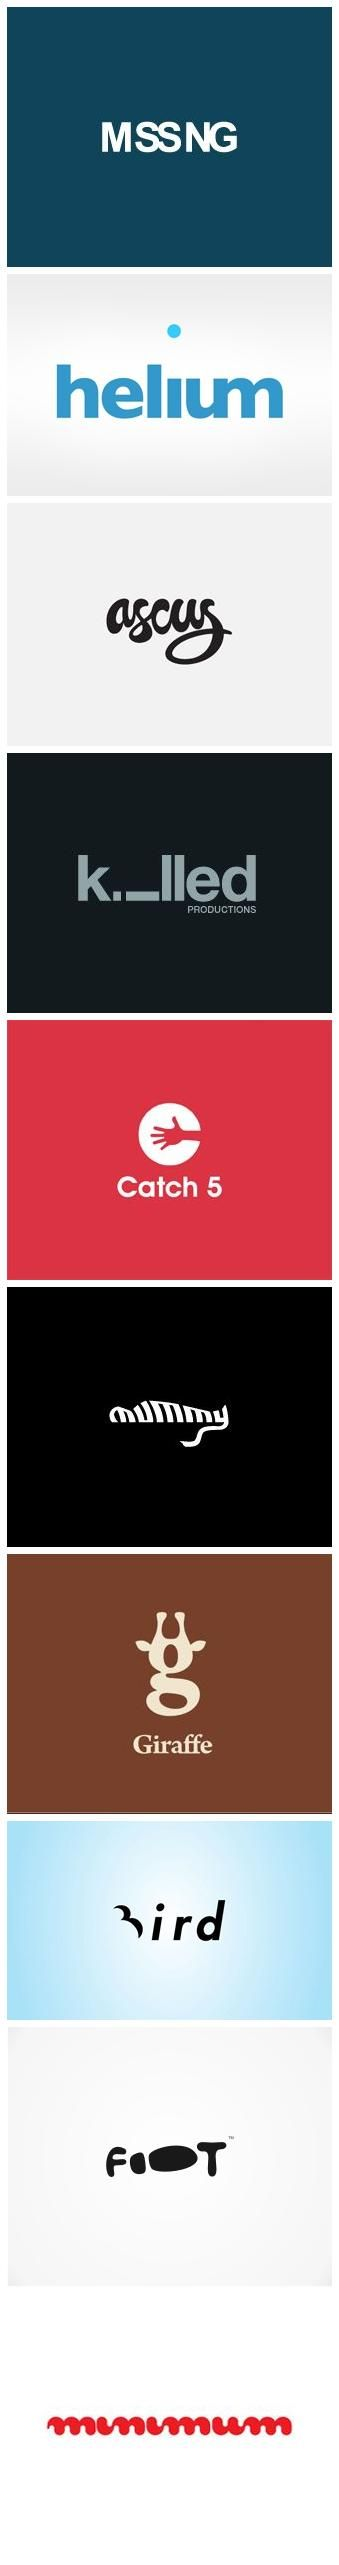 Highly Clever Minimal Logo Designs #logo #design